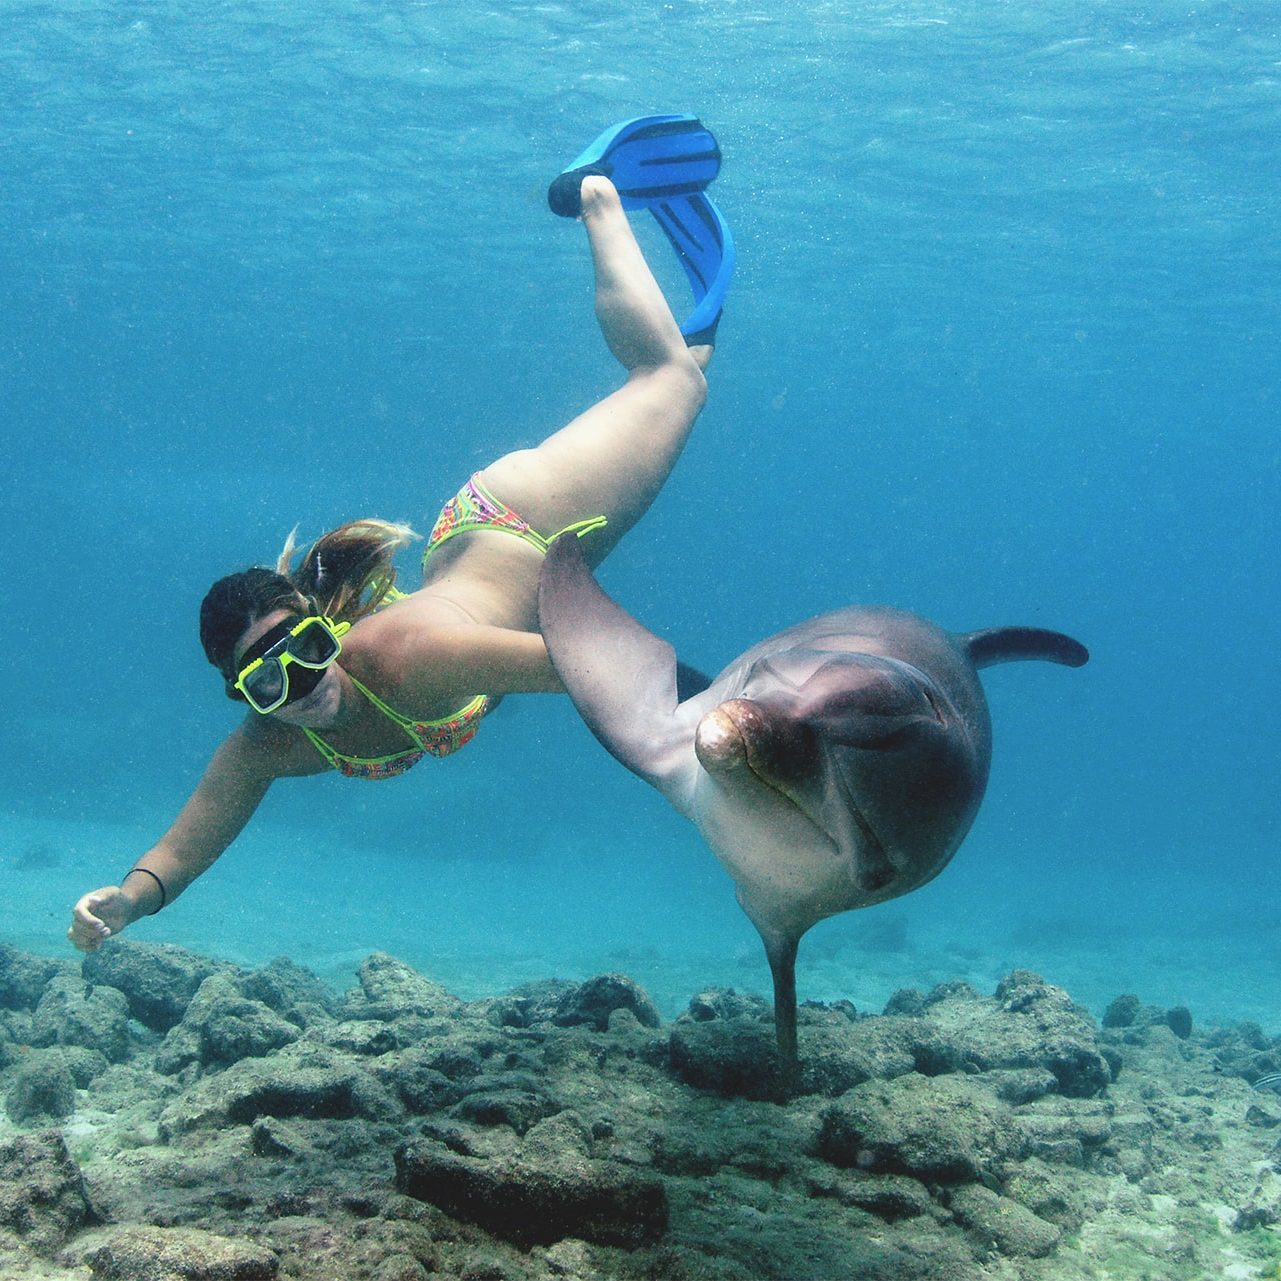 Tourist enjoying her Dolphin snorkel experience at the Dolphin Academy Curaçao.